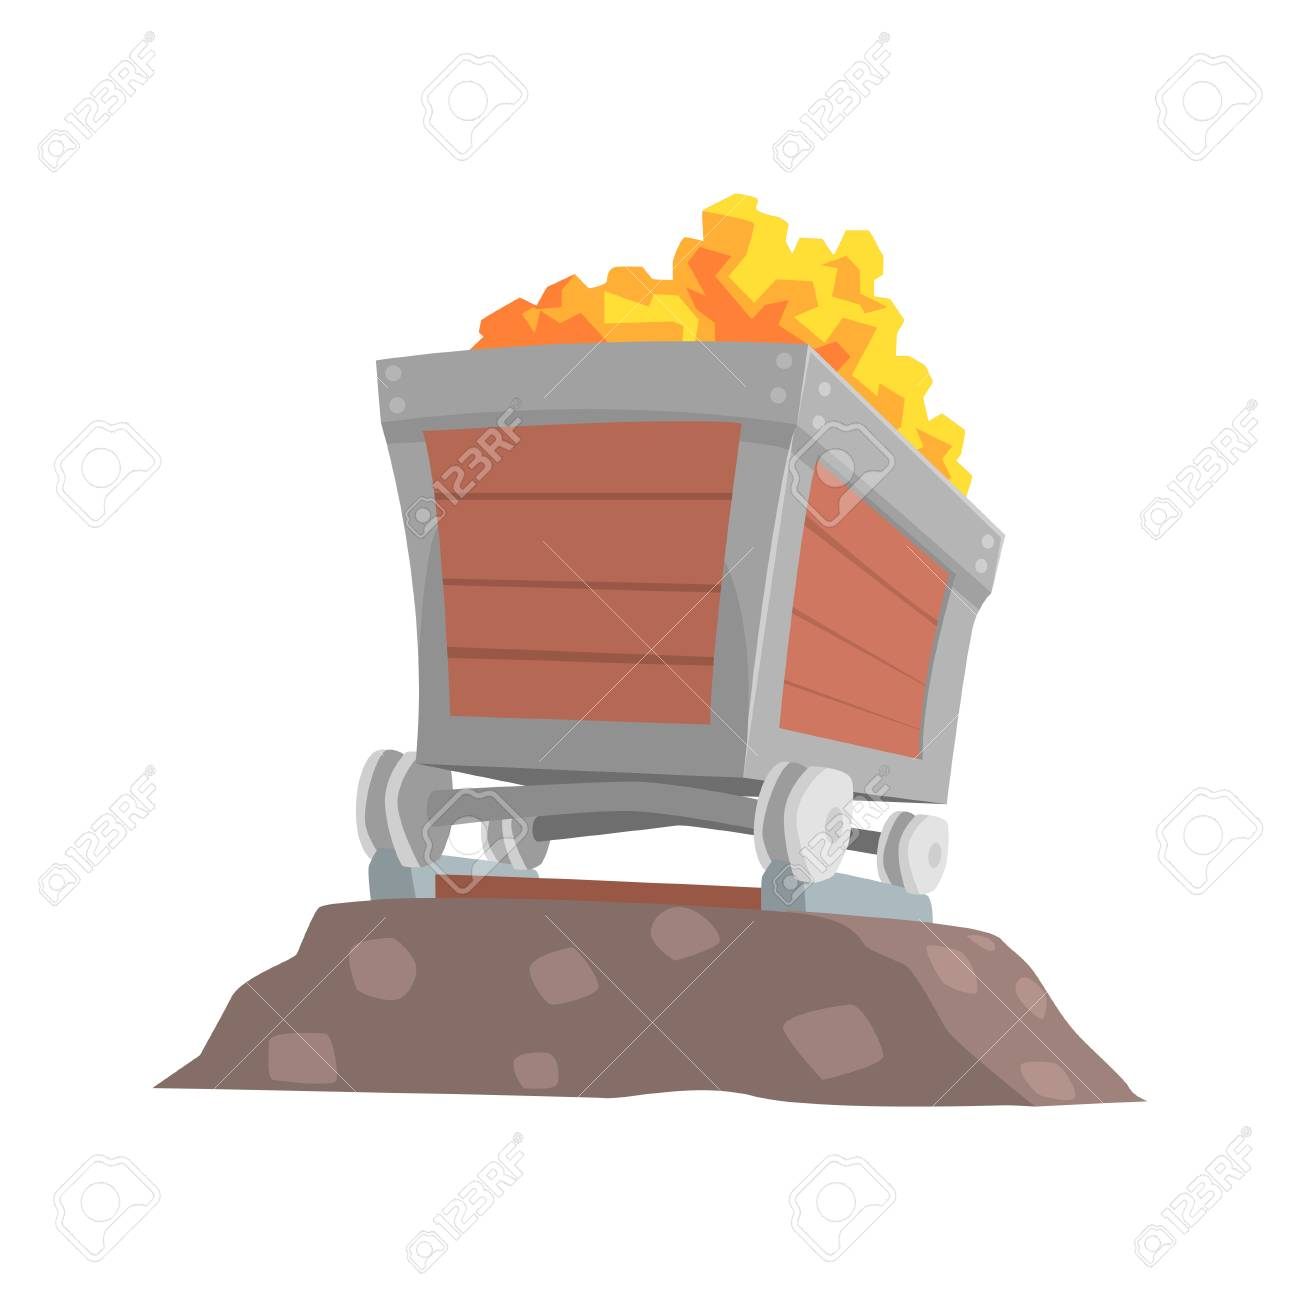 Retro Wooden Wagon With Gold Ore Mining Industry Concept Cartoon